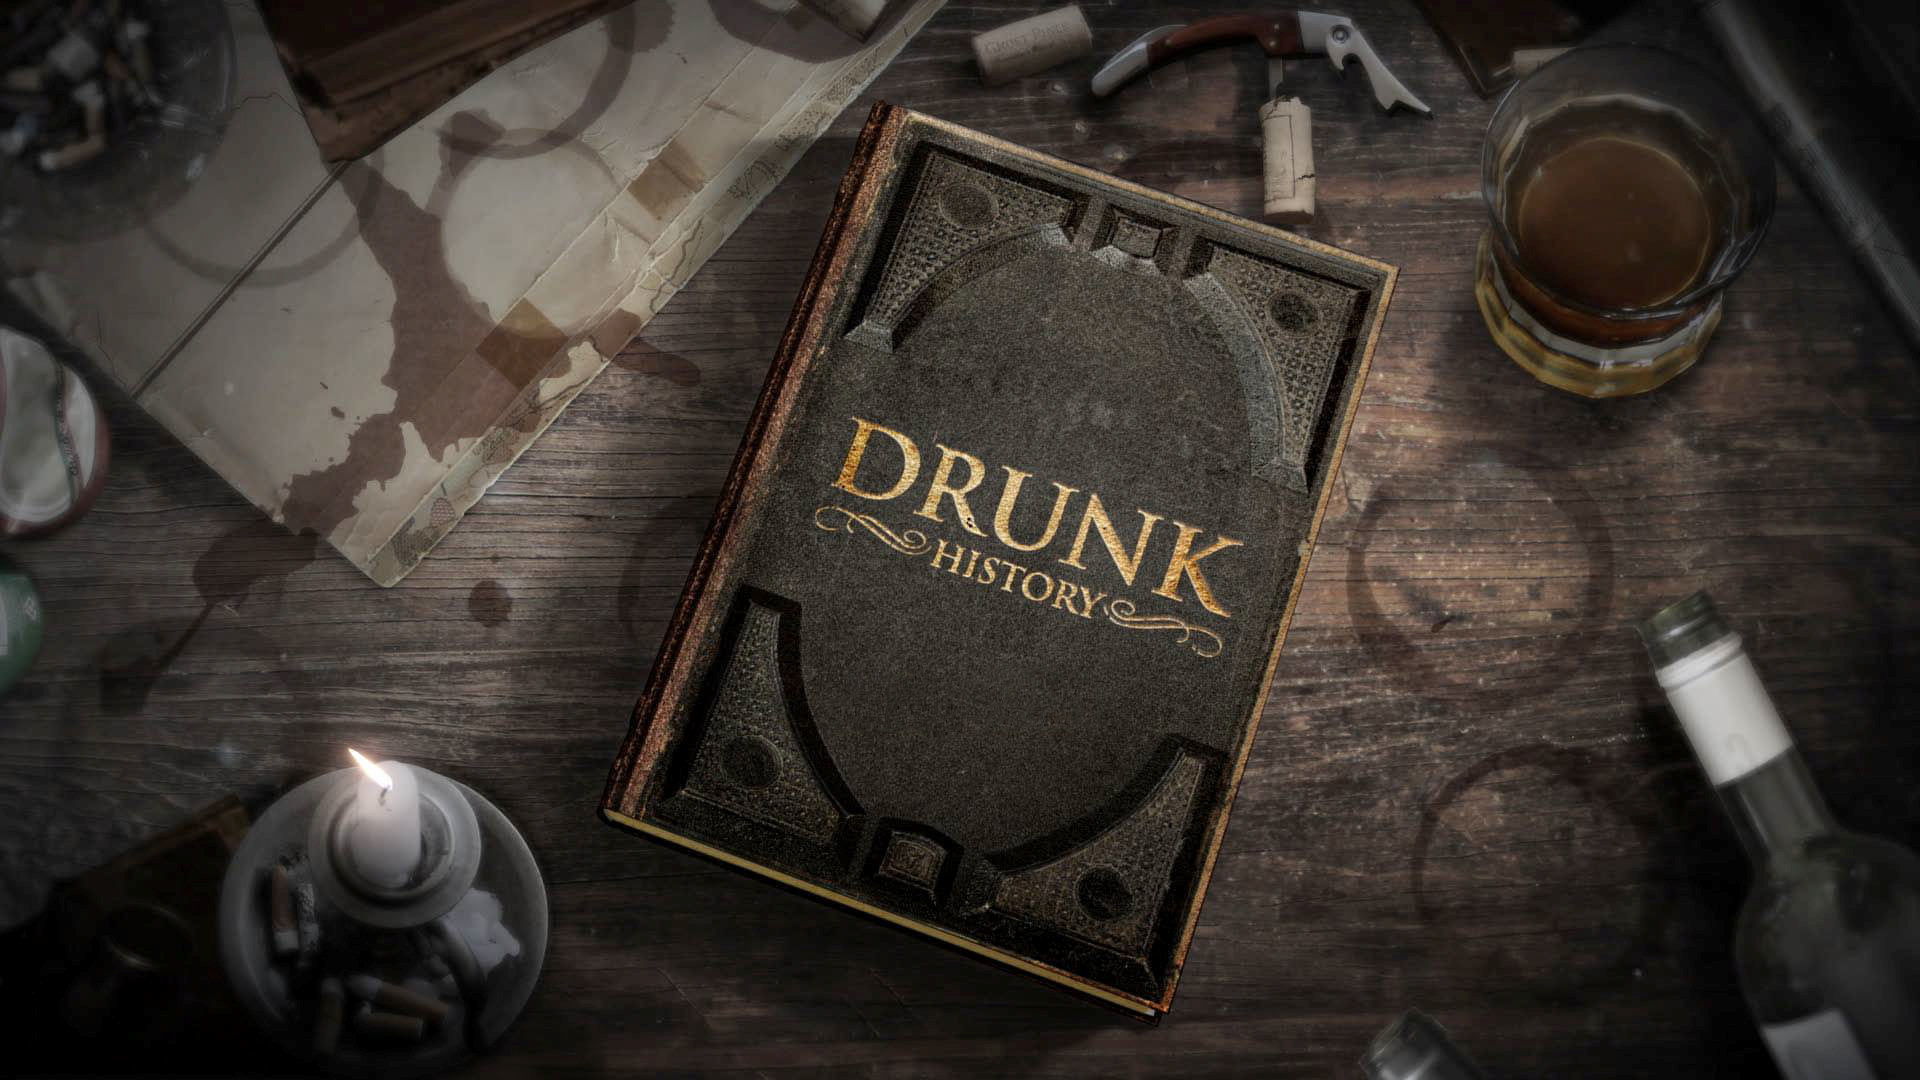 Show Drunk History